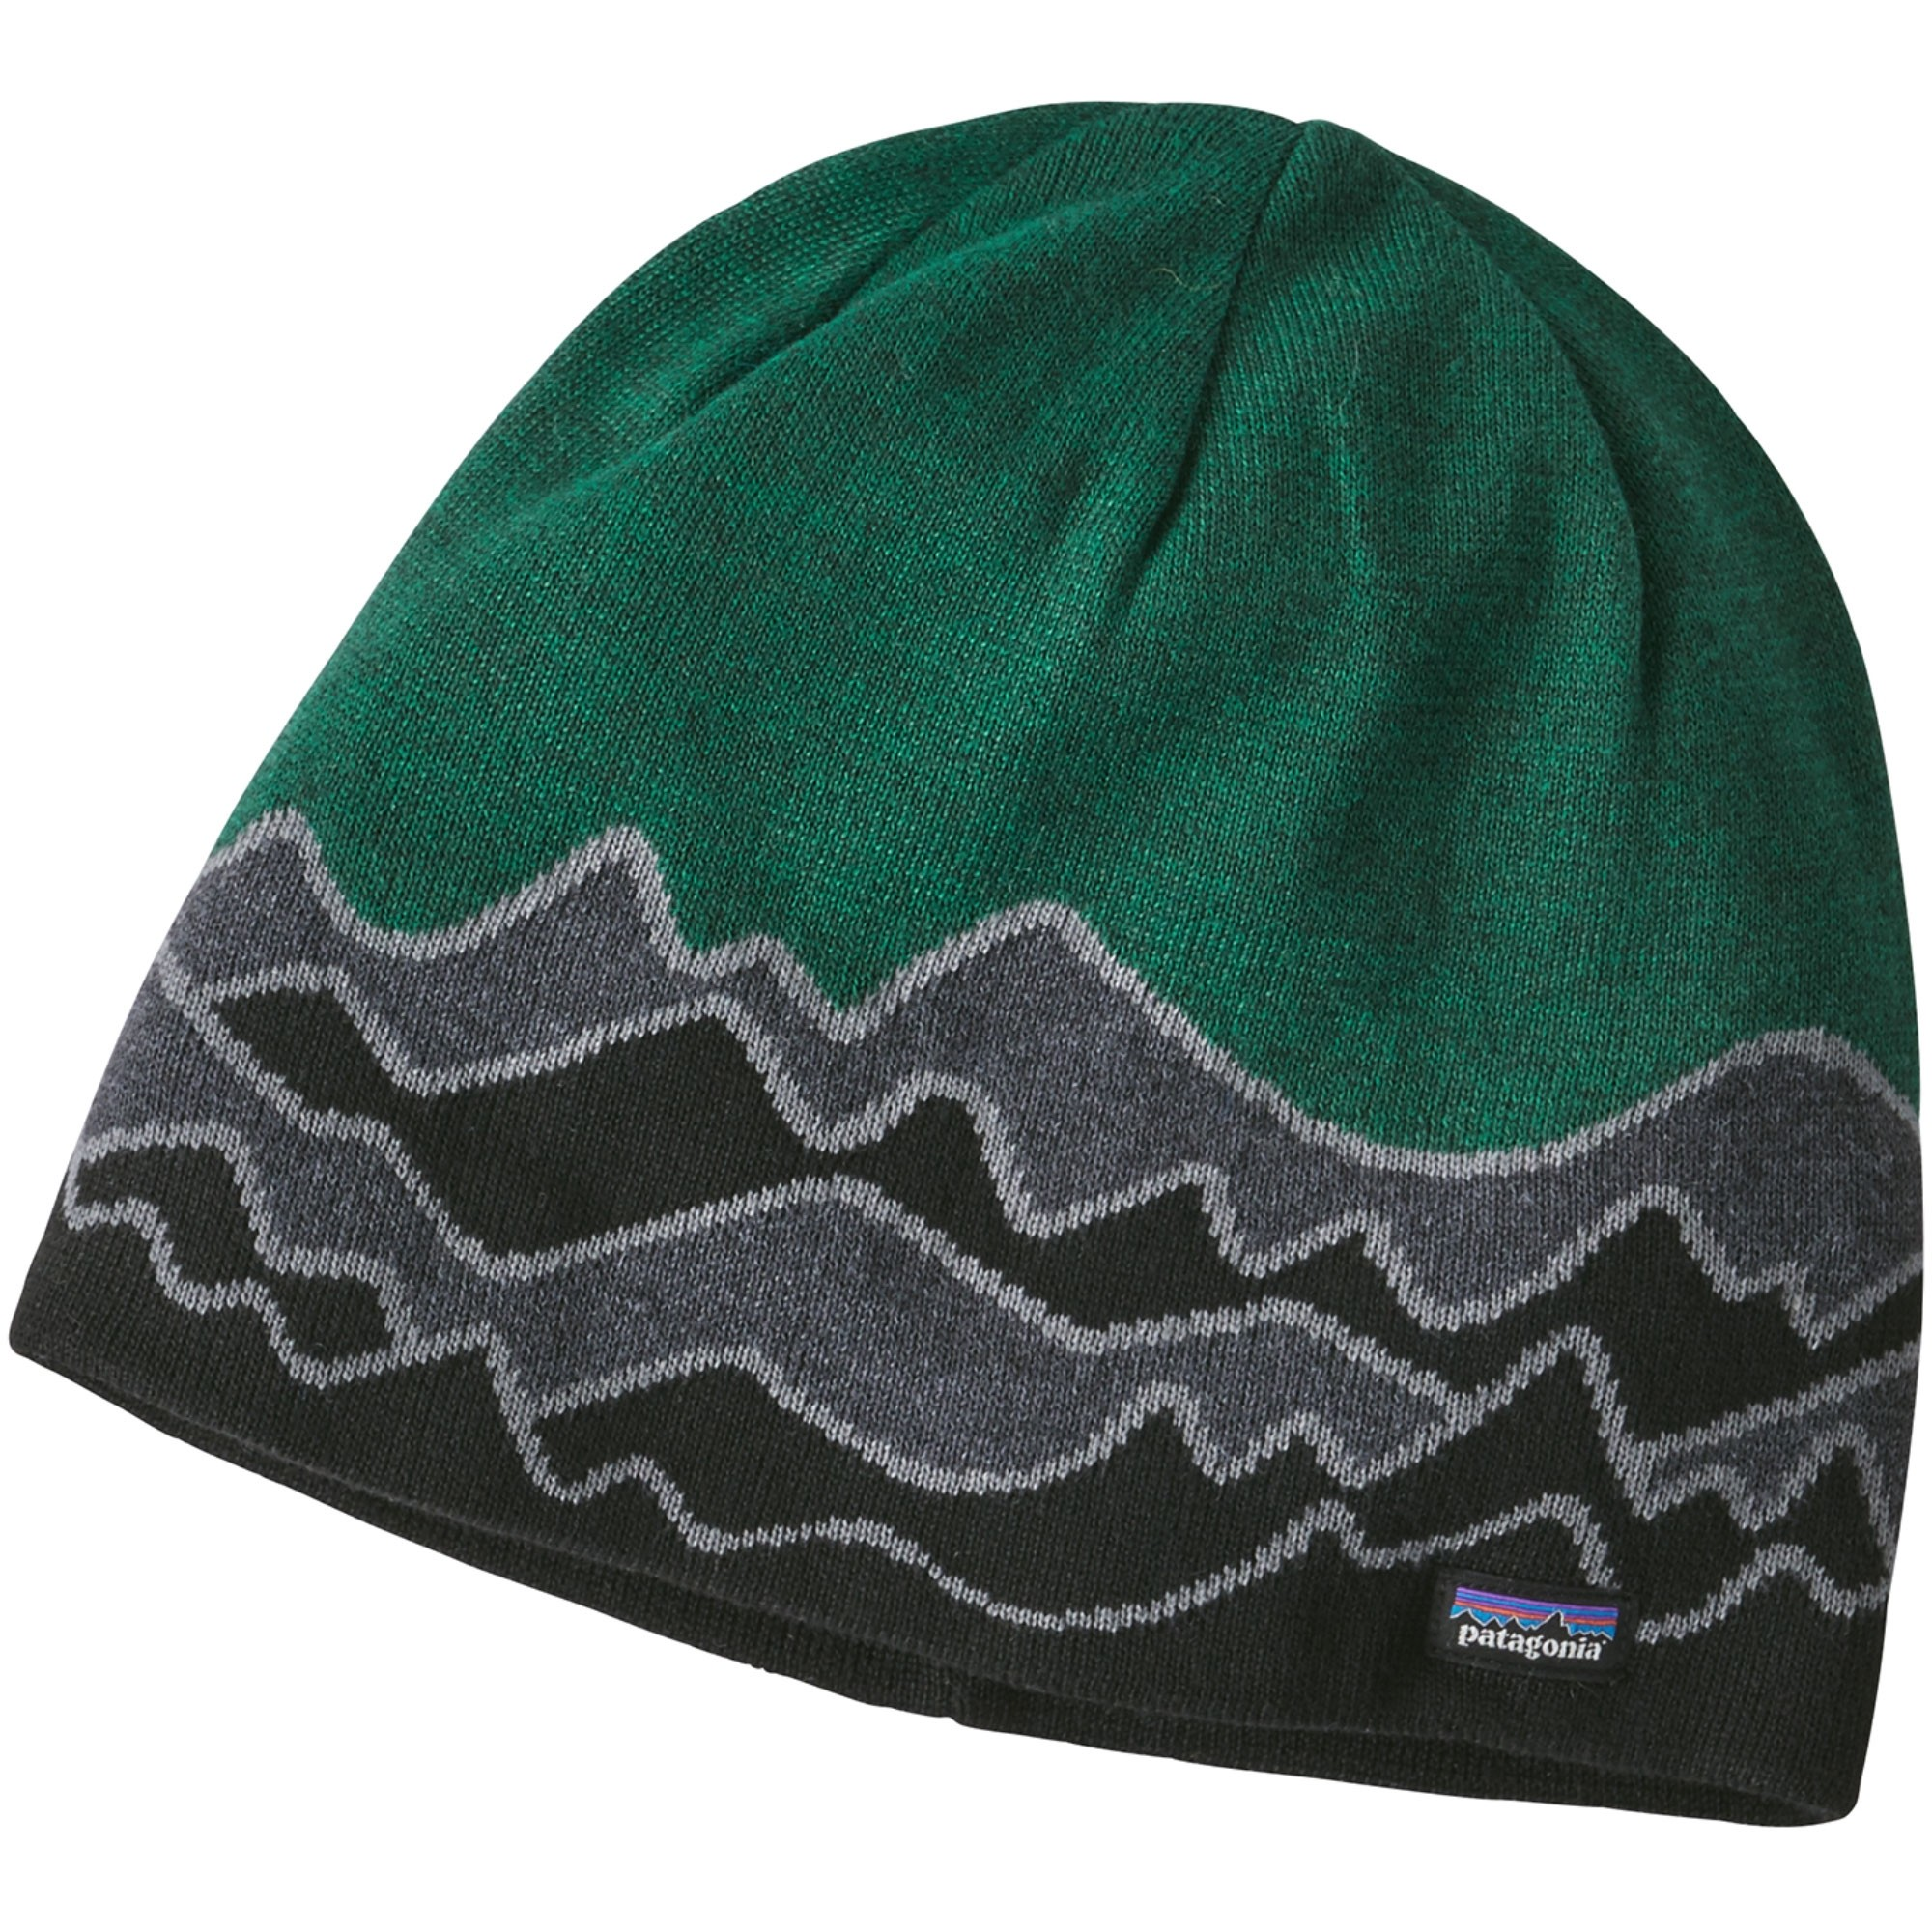 Patagonia Beanie Hat - Scenic Route: Forge Grey